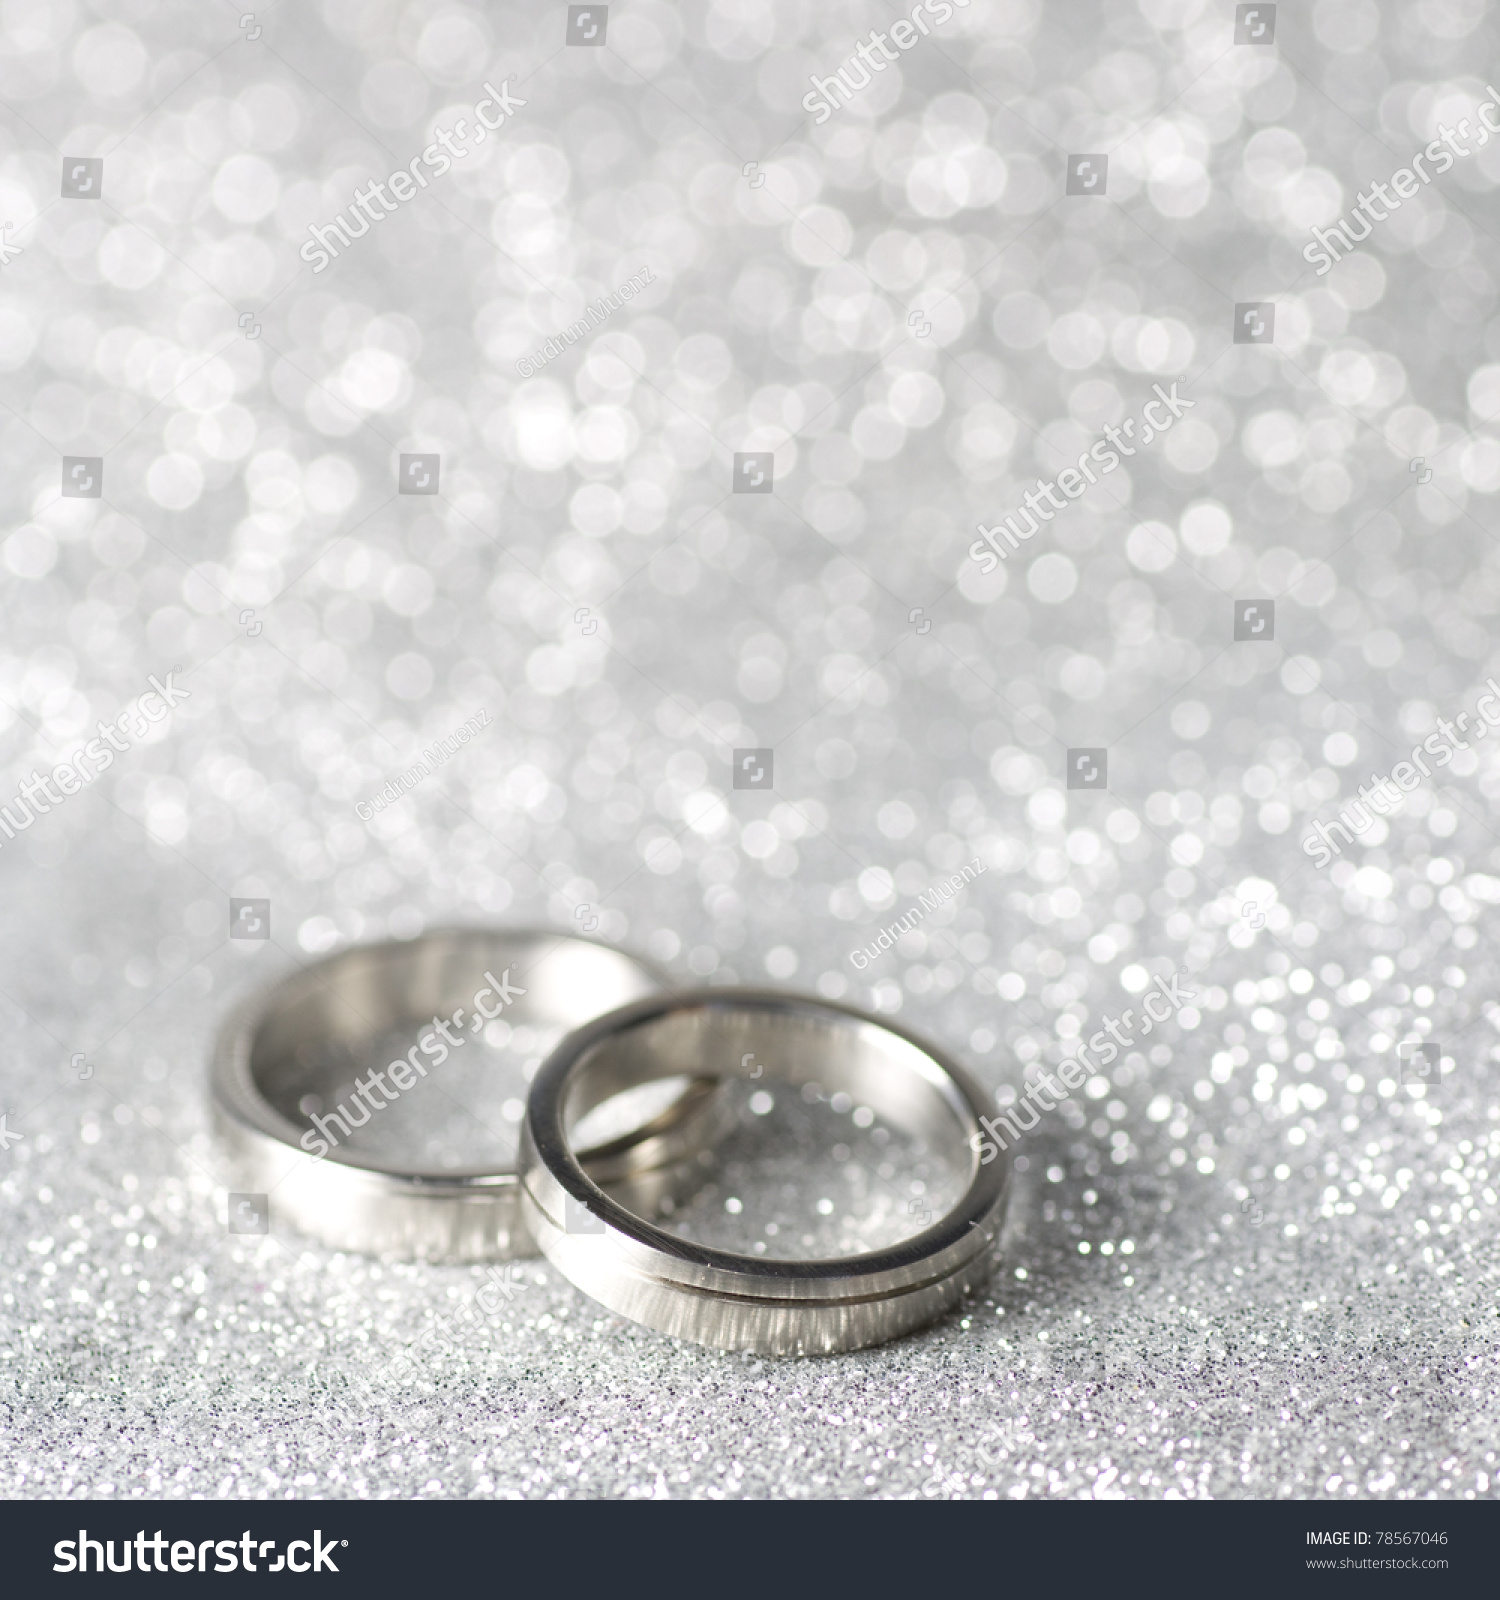 Silver Wedding Wallpaper Images Free Download